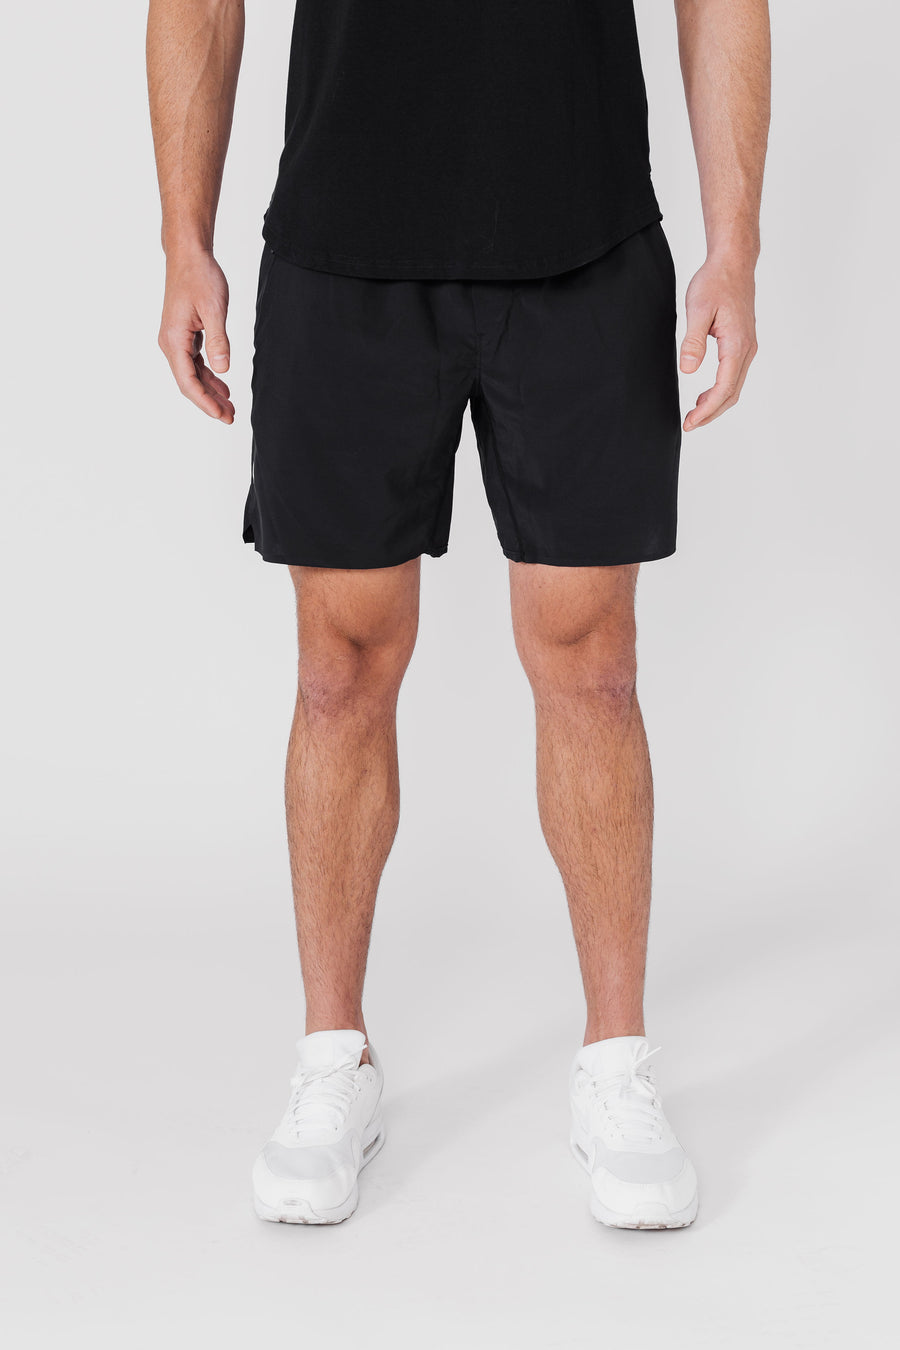 ACTA™ Ultimate Shorts - Black